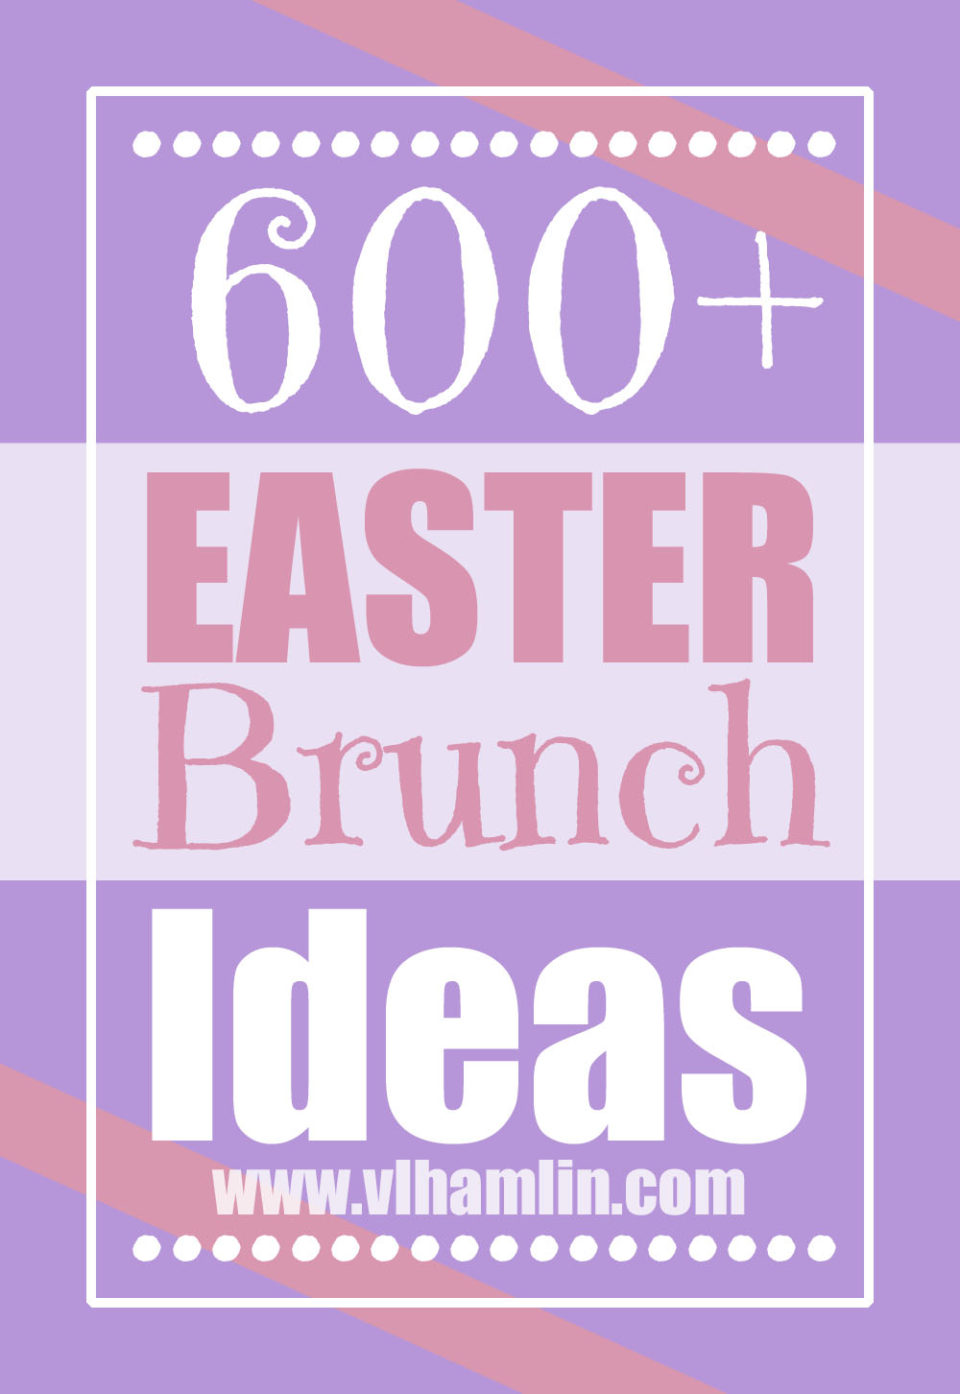 600+ Easter Brunch Ideas